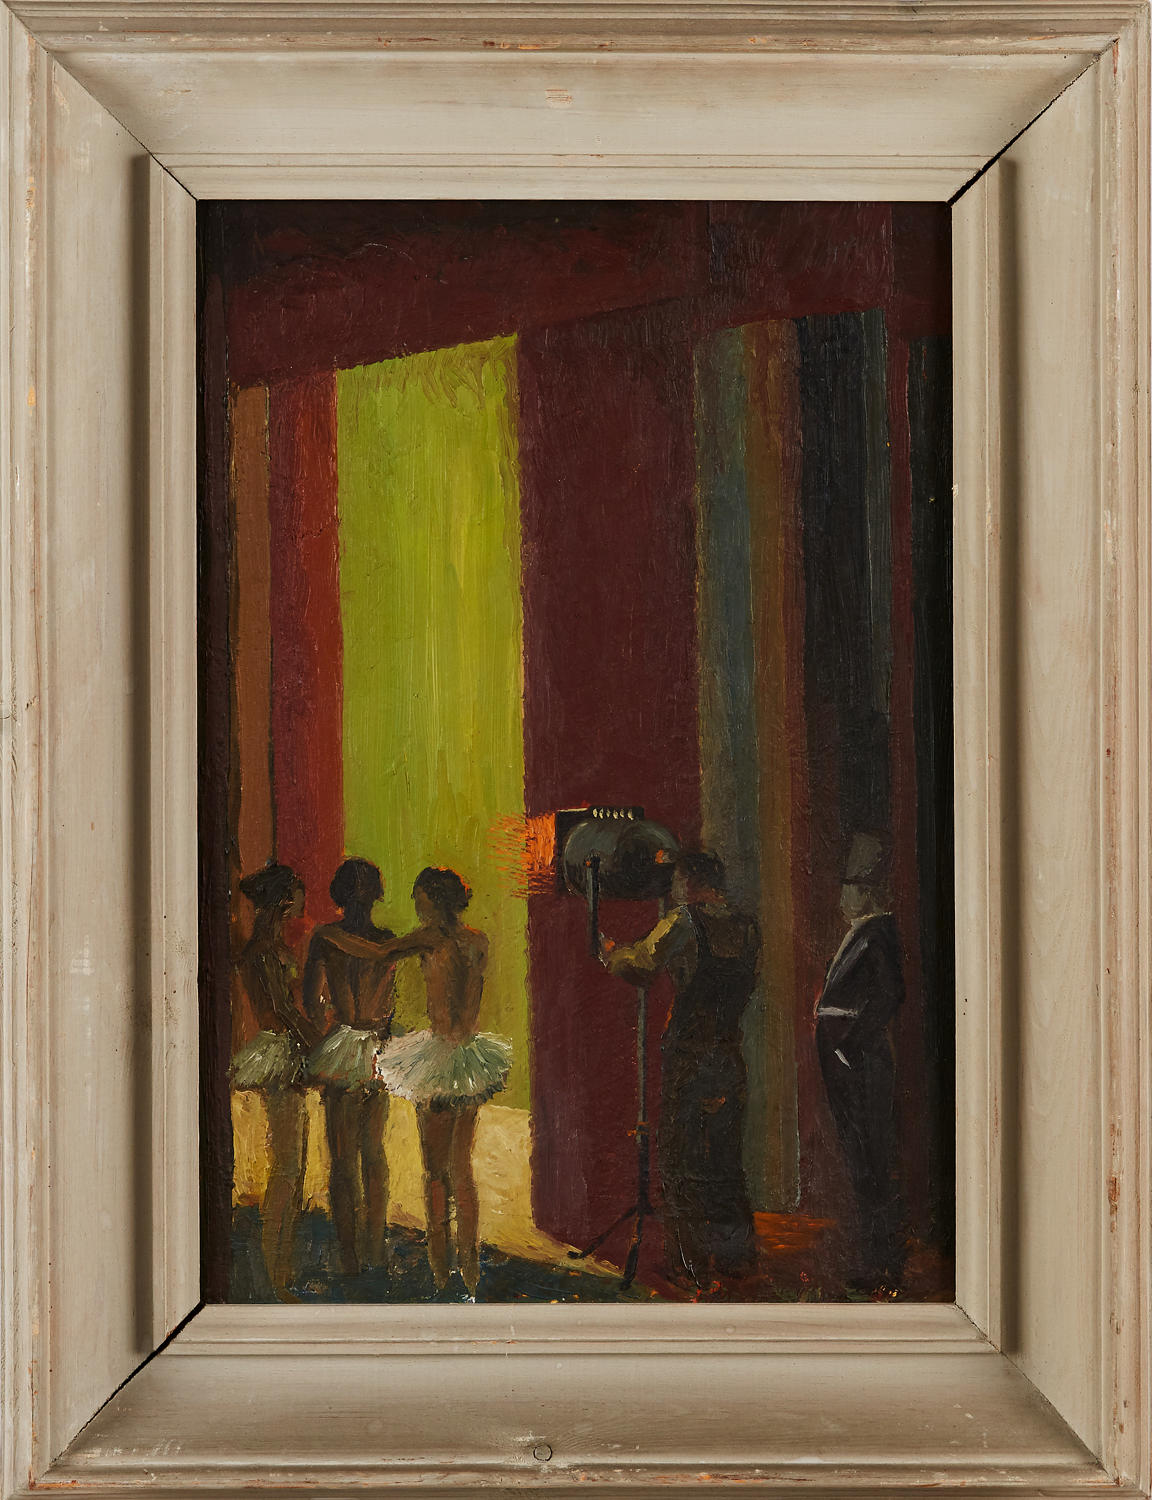 HARALD GARMLAND - From a Theater, oil on canvas